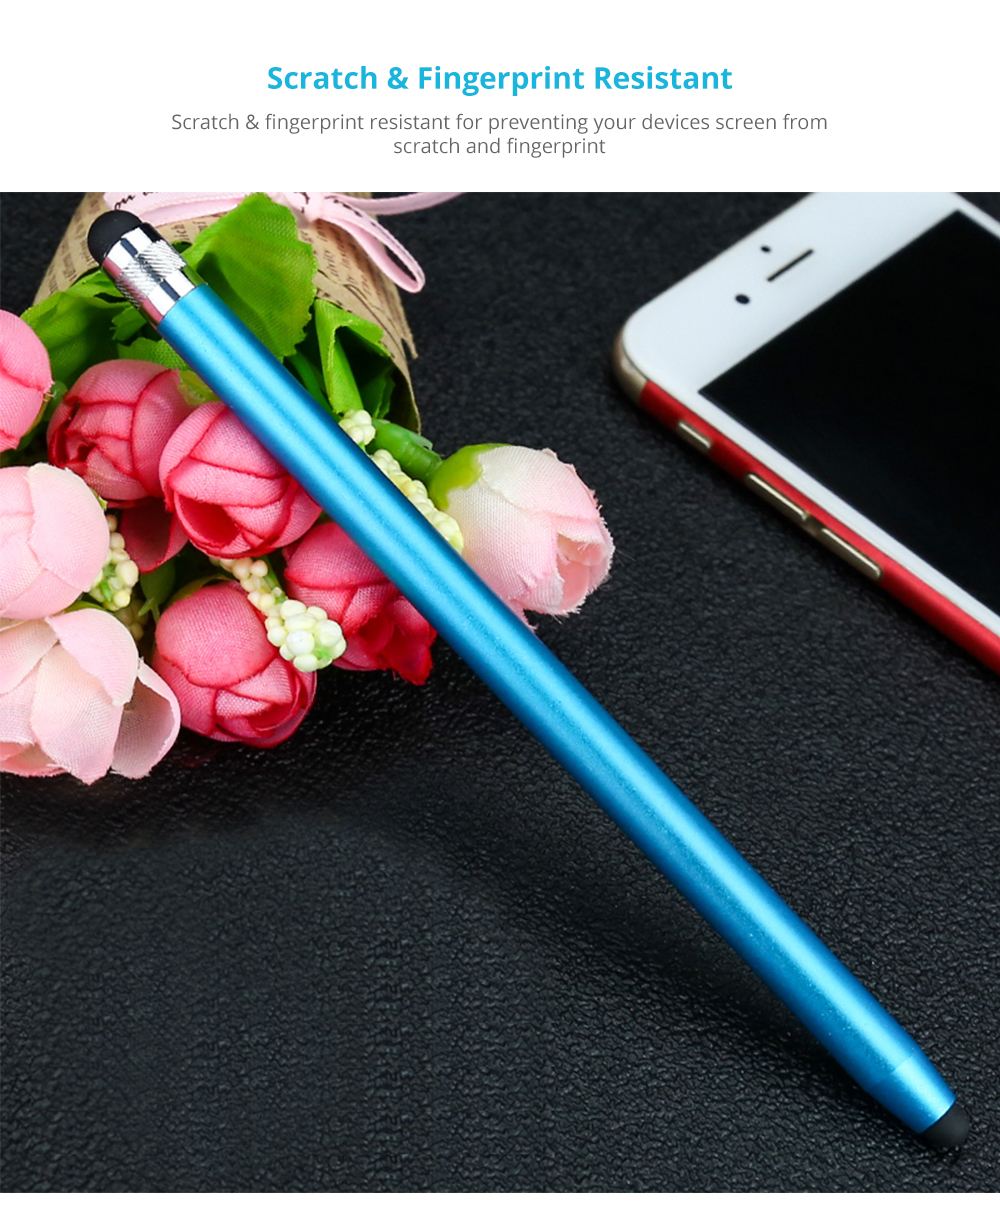 Laptop Cellphone Universal Stylus Compatible for Kindle Touch ipad iphone 6/6s 6Plus 6s Plus Samsung S5 S6 S7 Edge S8 Plus iPad Pro Note Screen Touch Sensitive 9